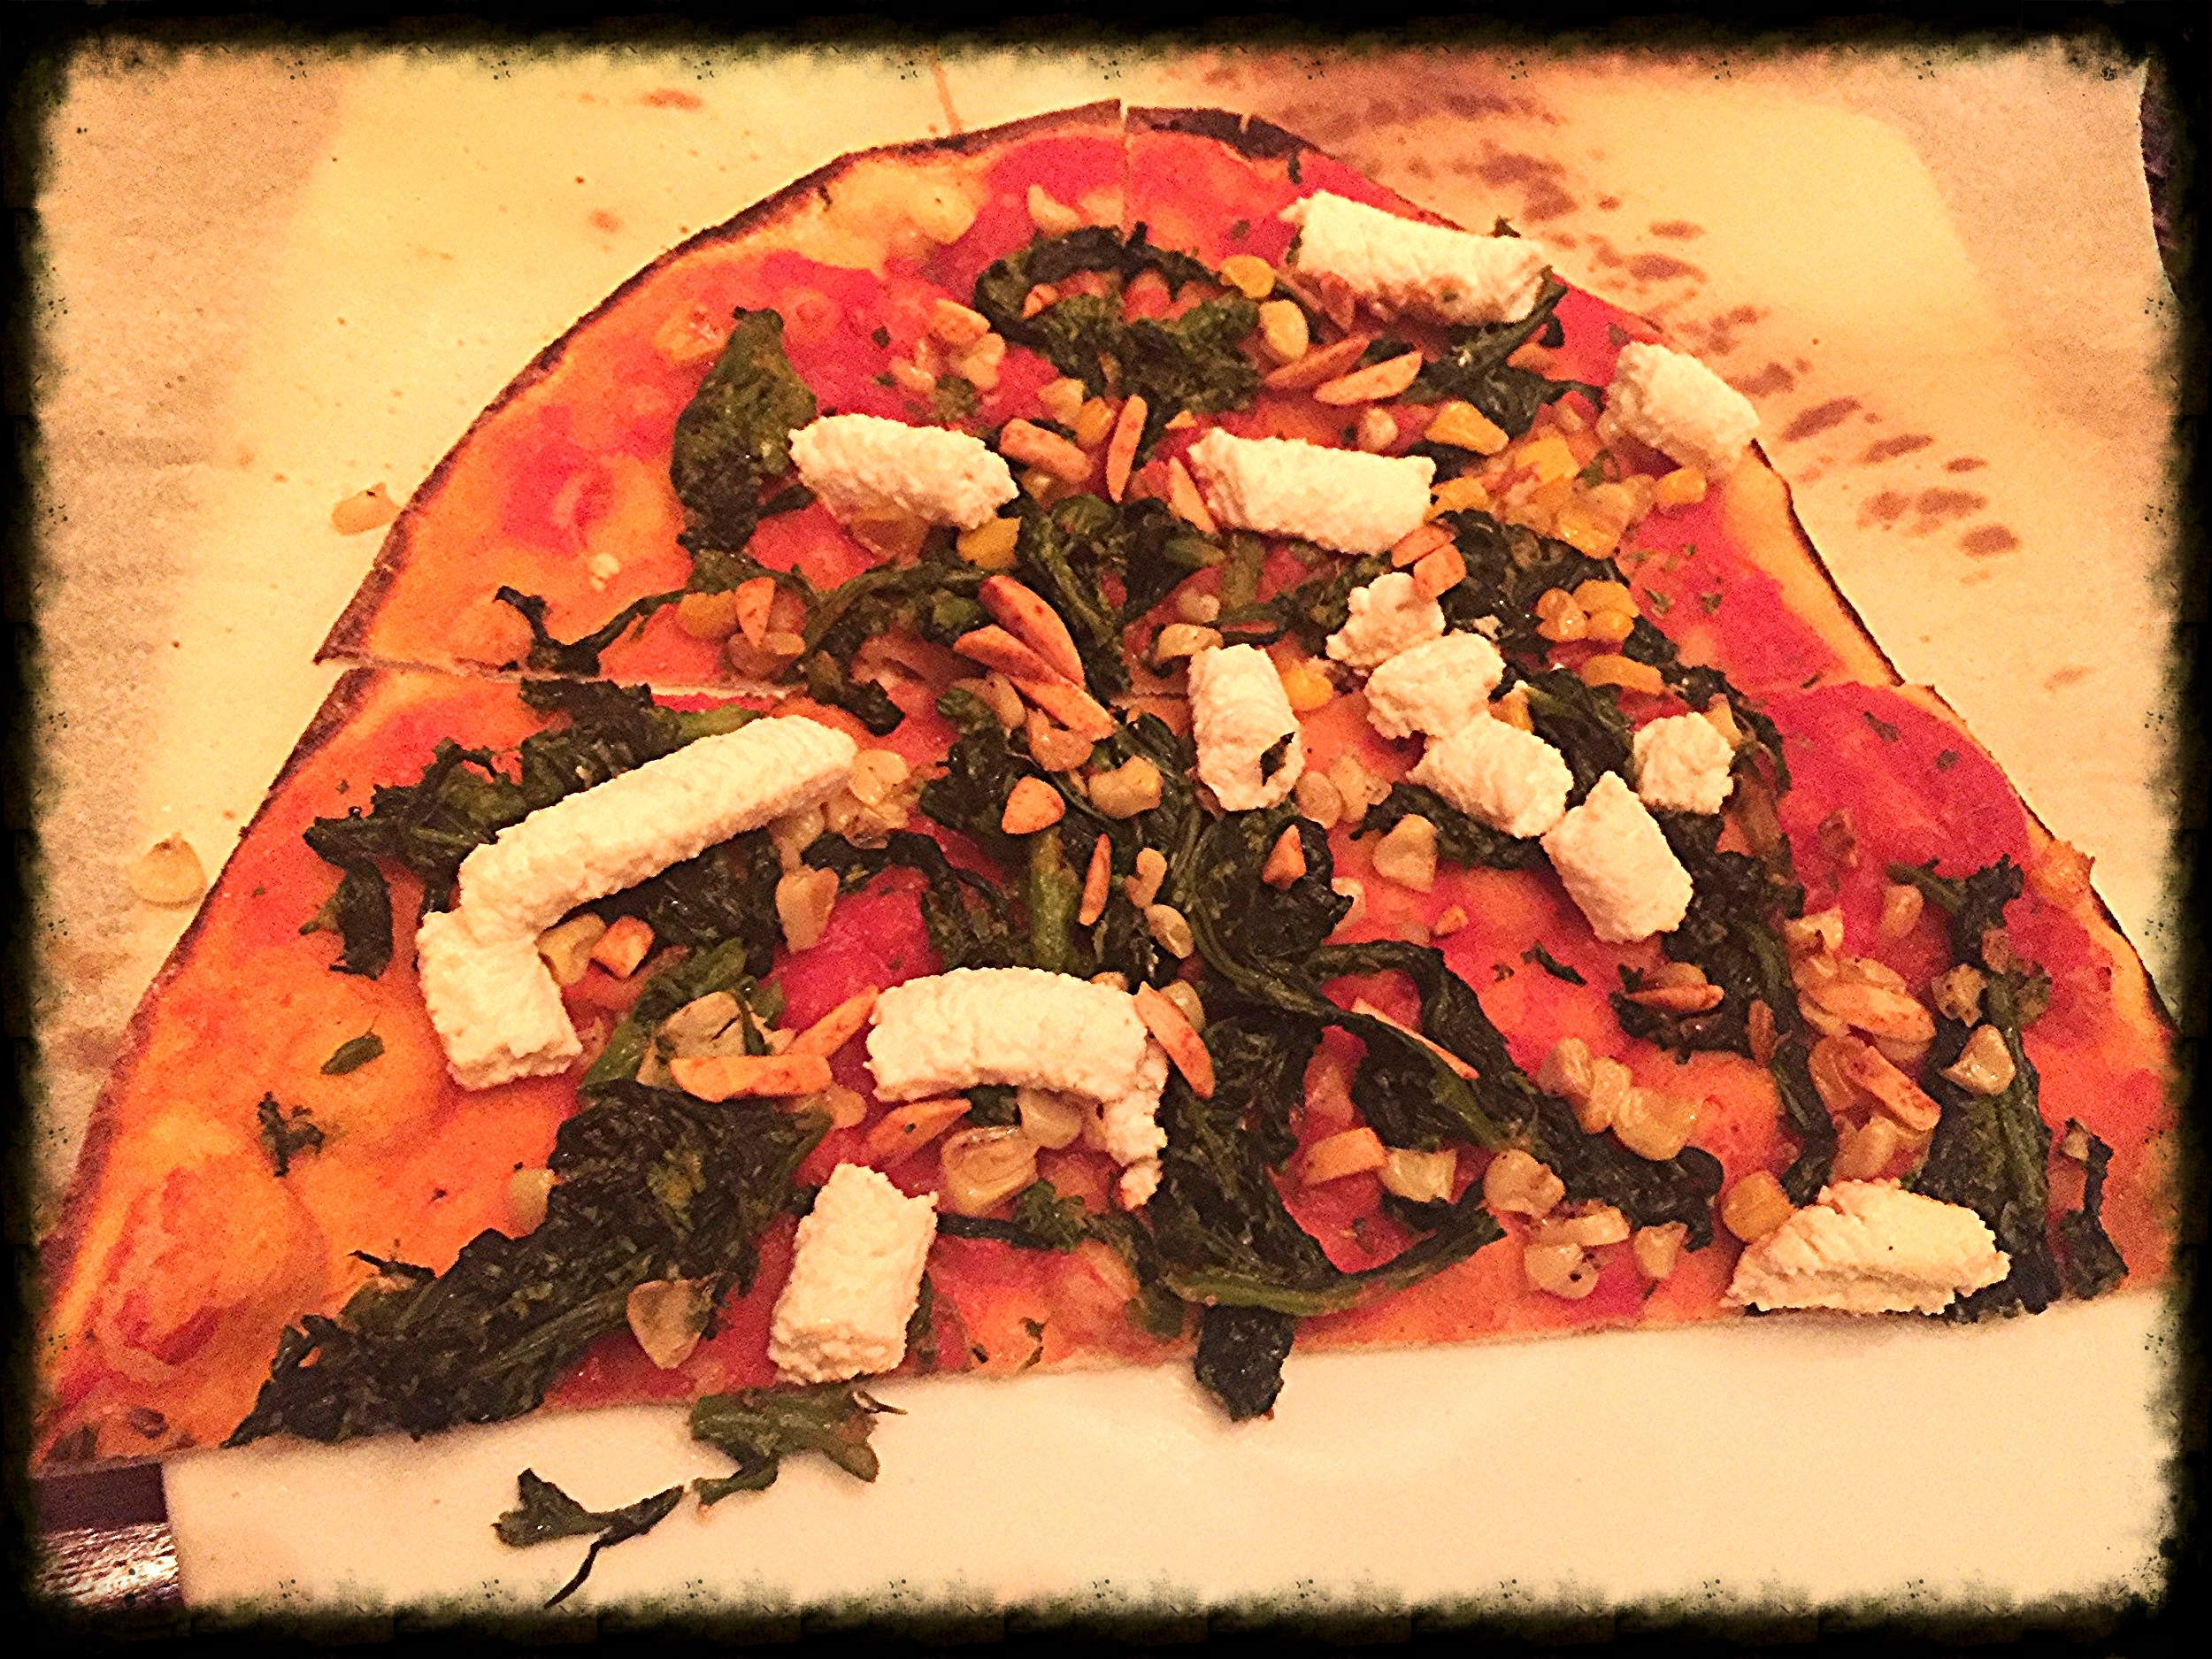 Vegan pizza from Allegro at Wynn Las Vegas